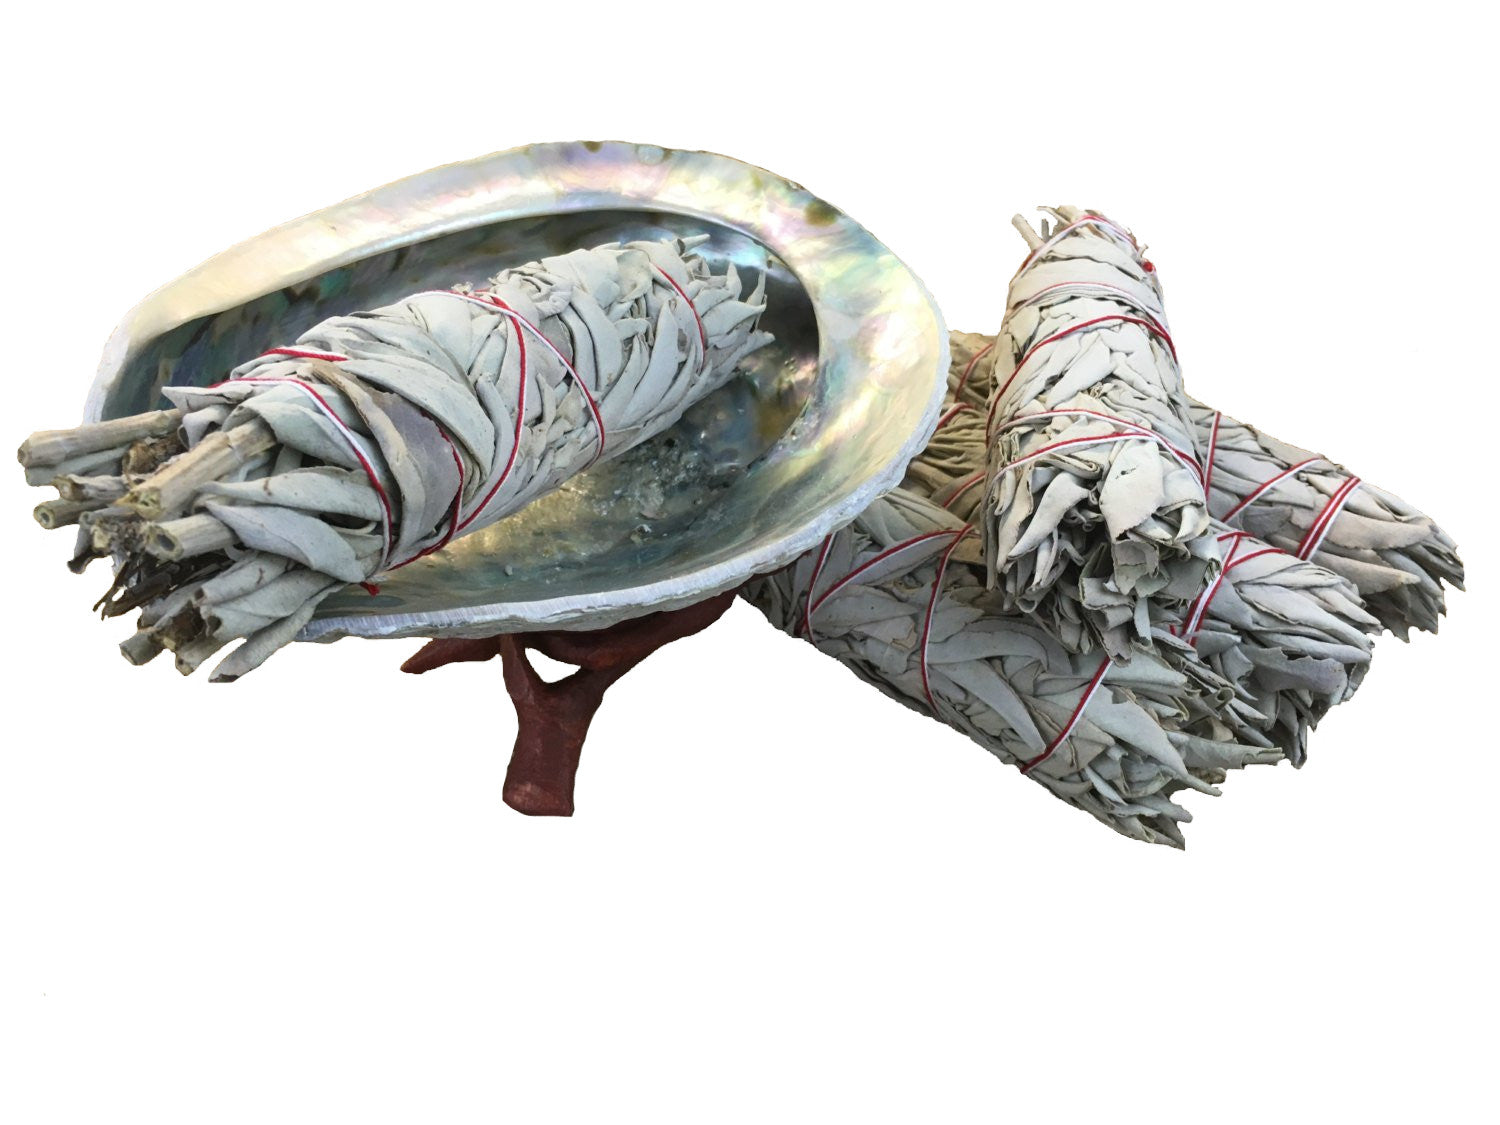 "Extra Large Abalone Shell Smudge Kit - 6+"" Shell, 5 Sticks of 4"" White California Sage, Wood Stand - premium grade"